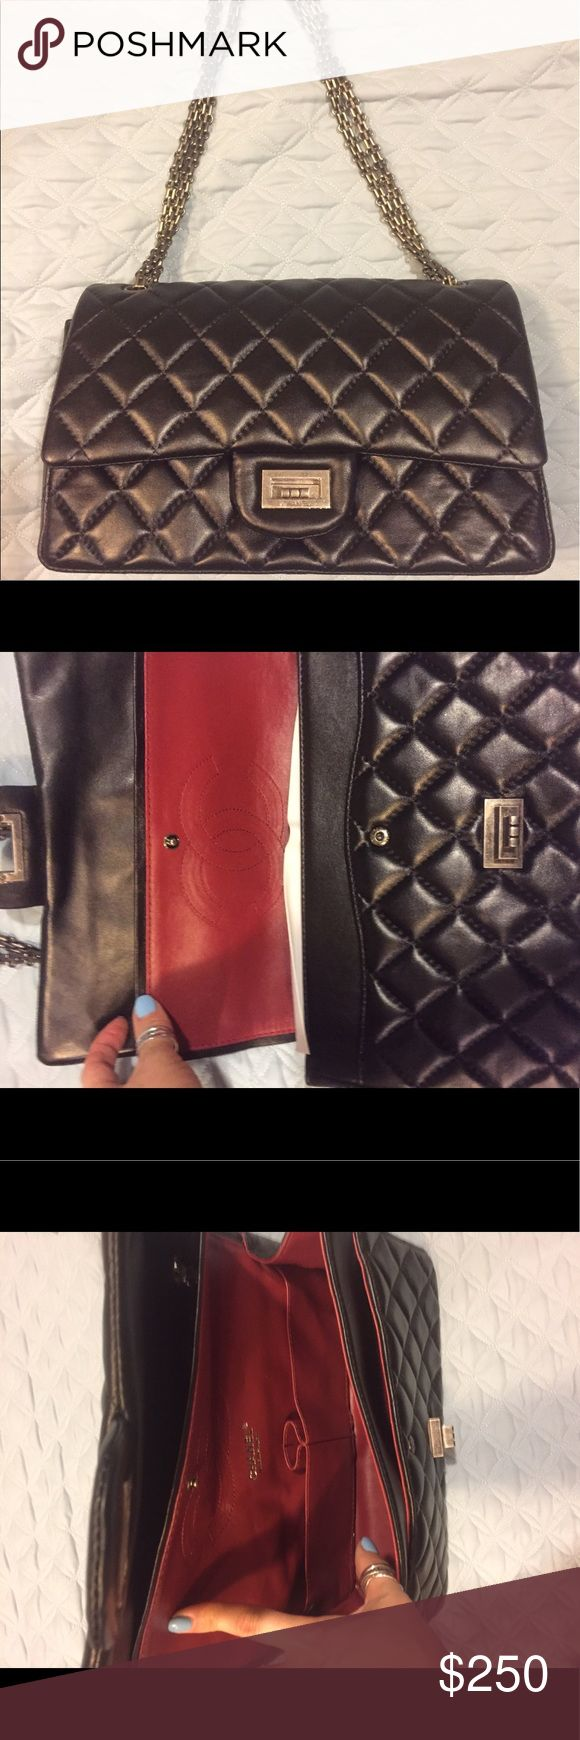 Chanel double flap bag.  Brand new Never used. Very clean Bags Shoulder Bags